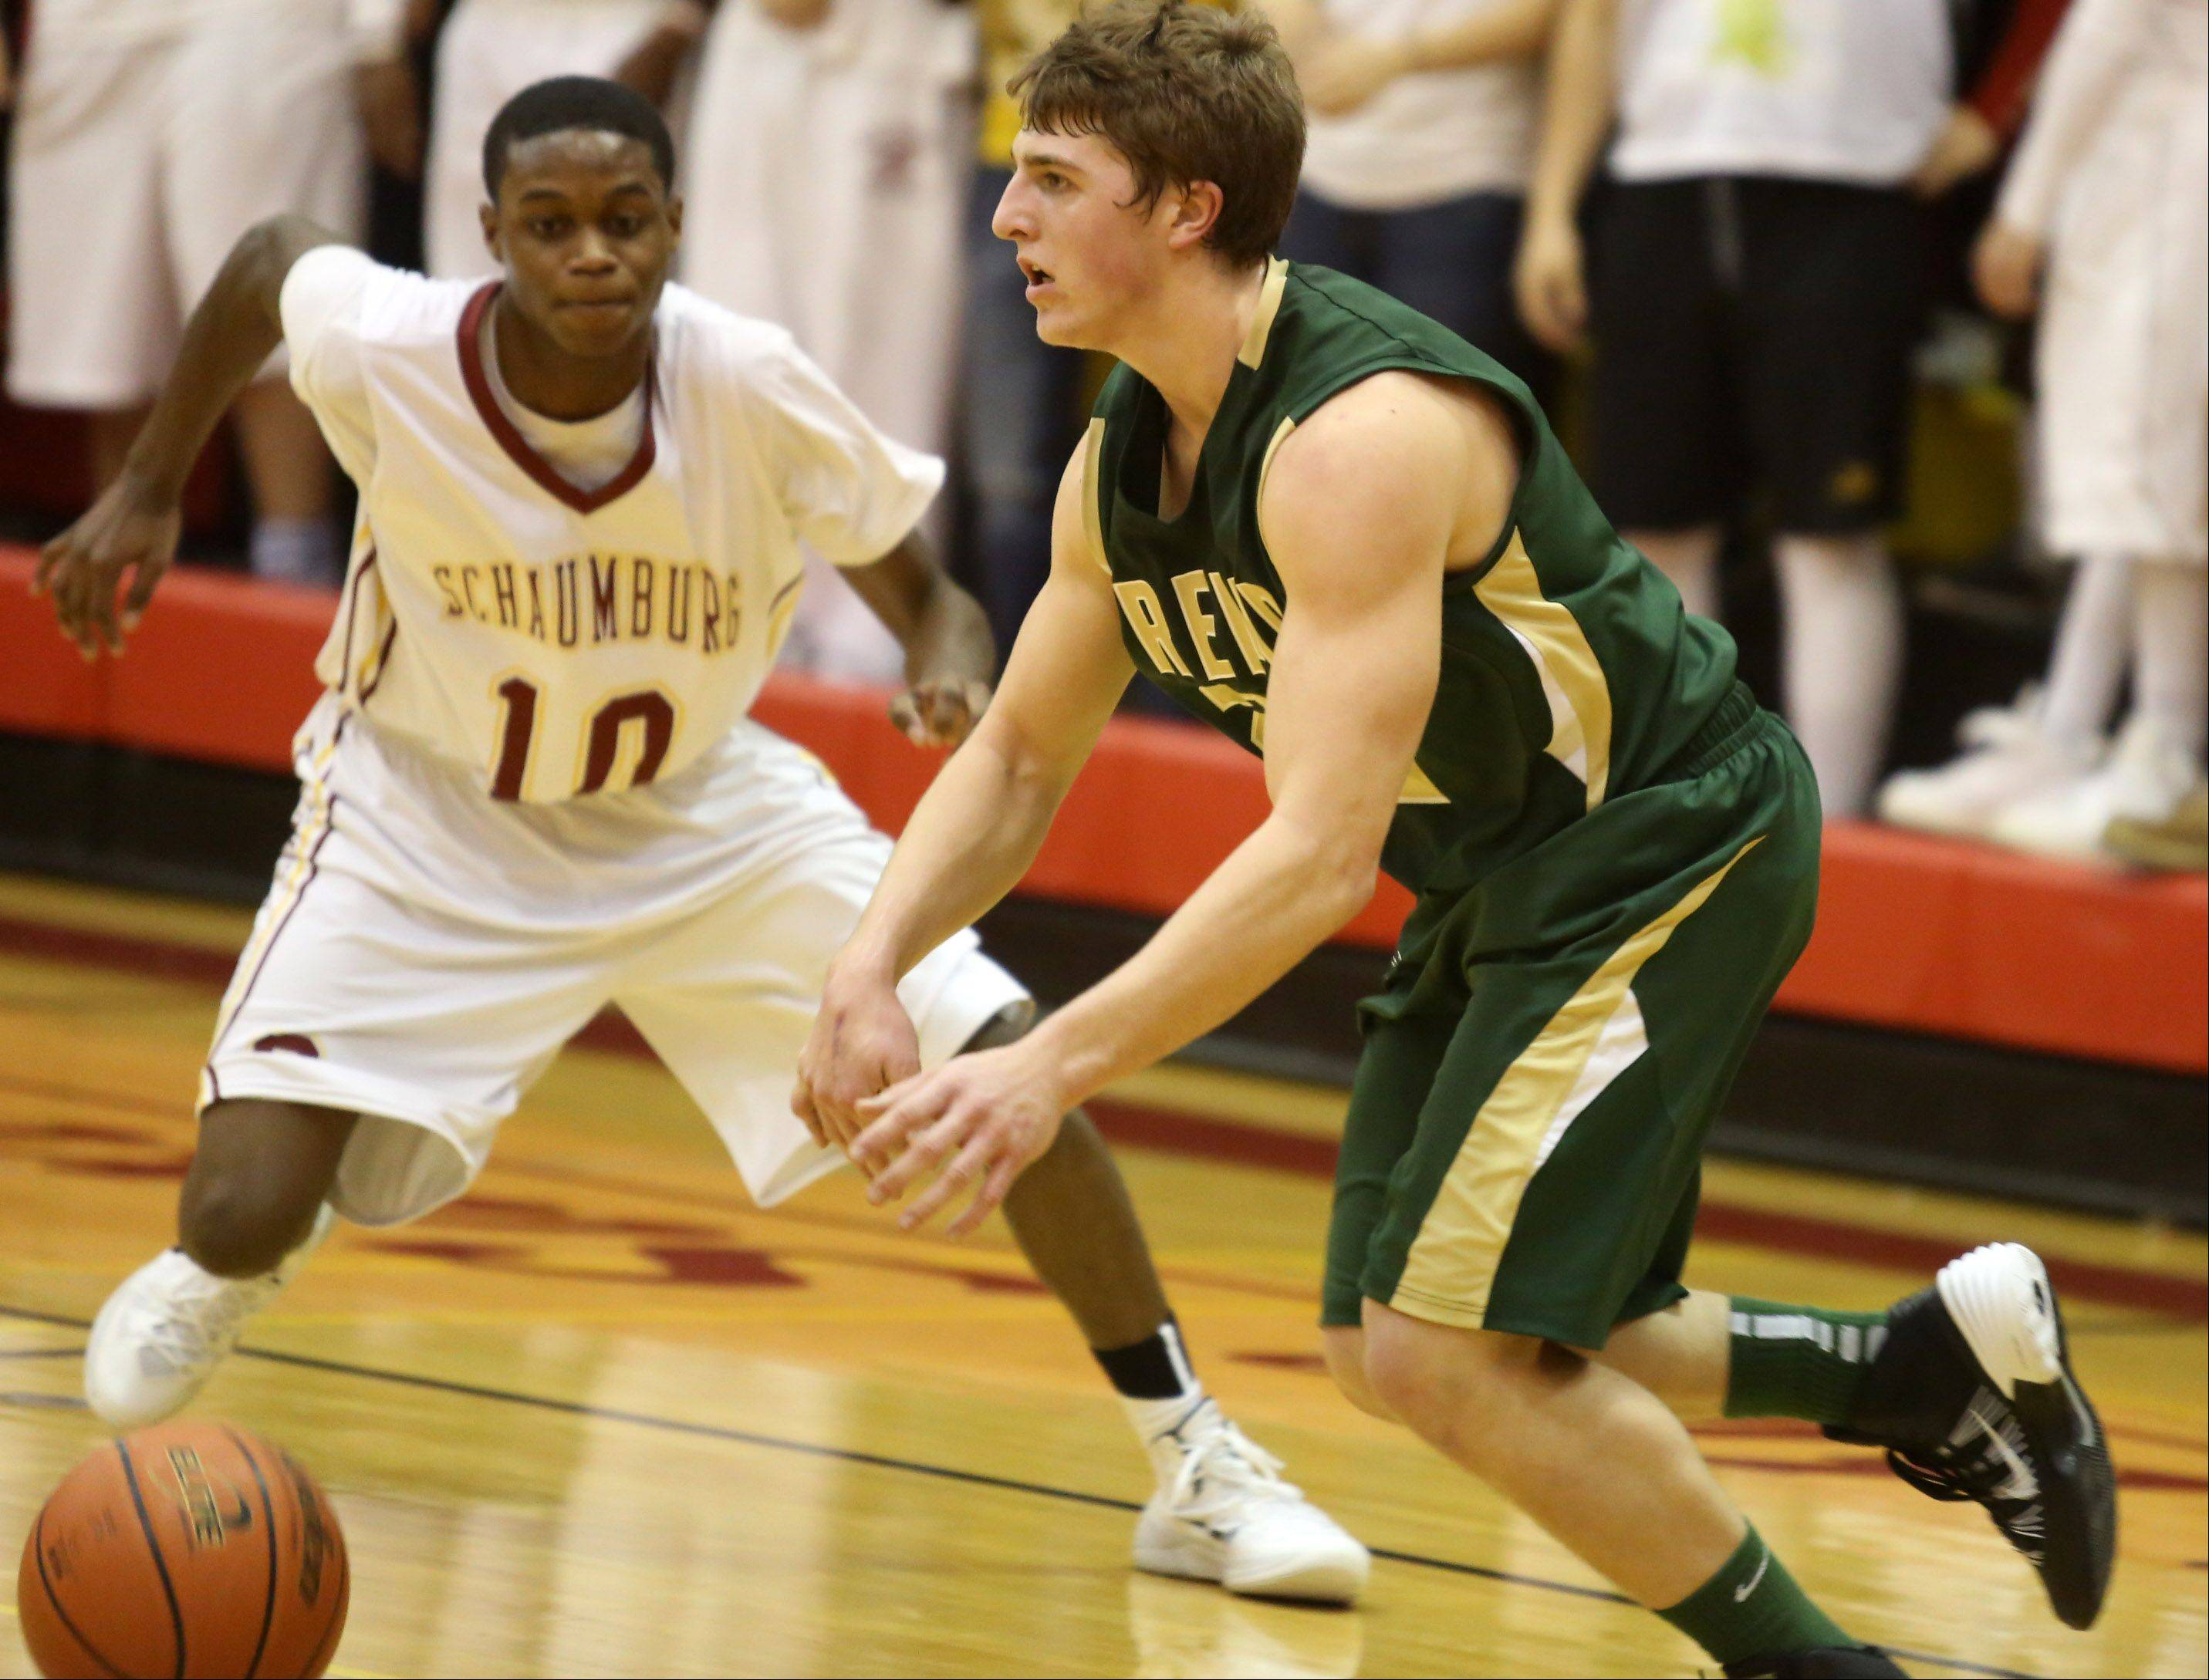 Fremd guard Garrett Groot pushes the ball up court against Schaumburg defender Marquis Woodard.